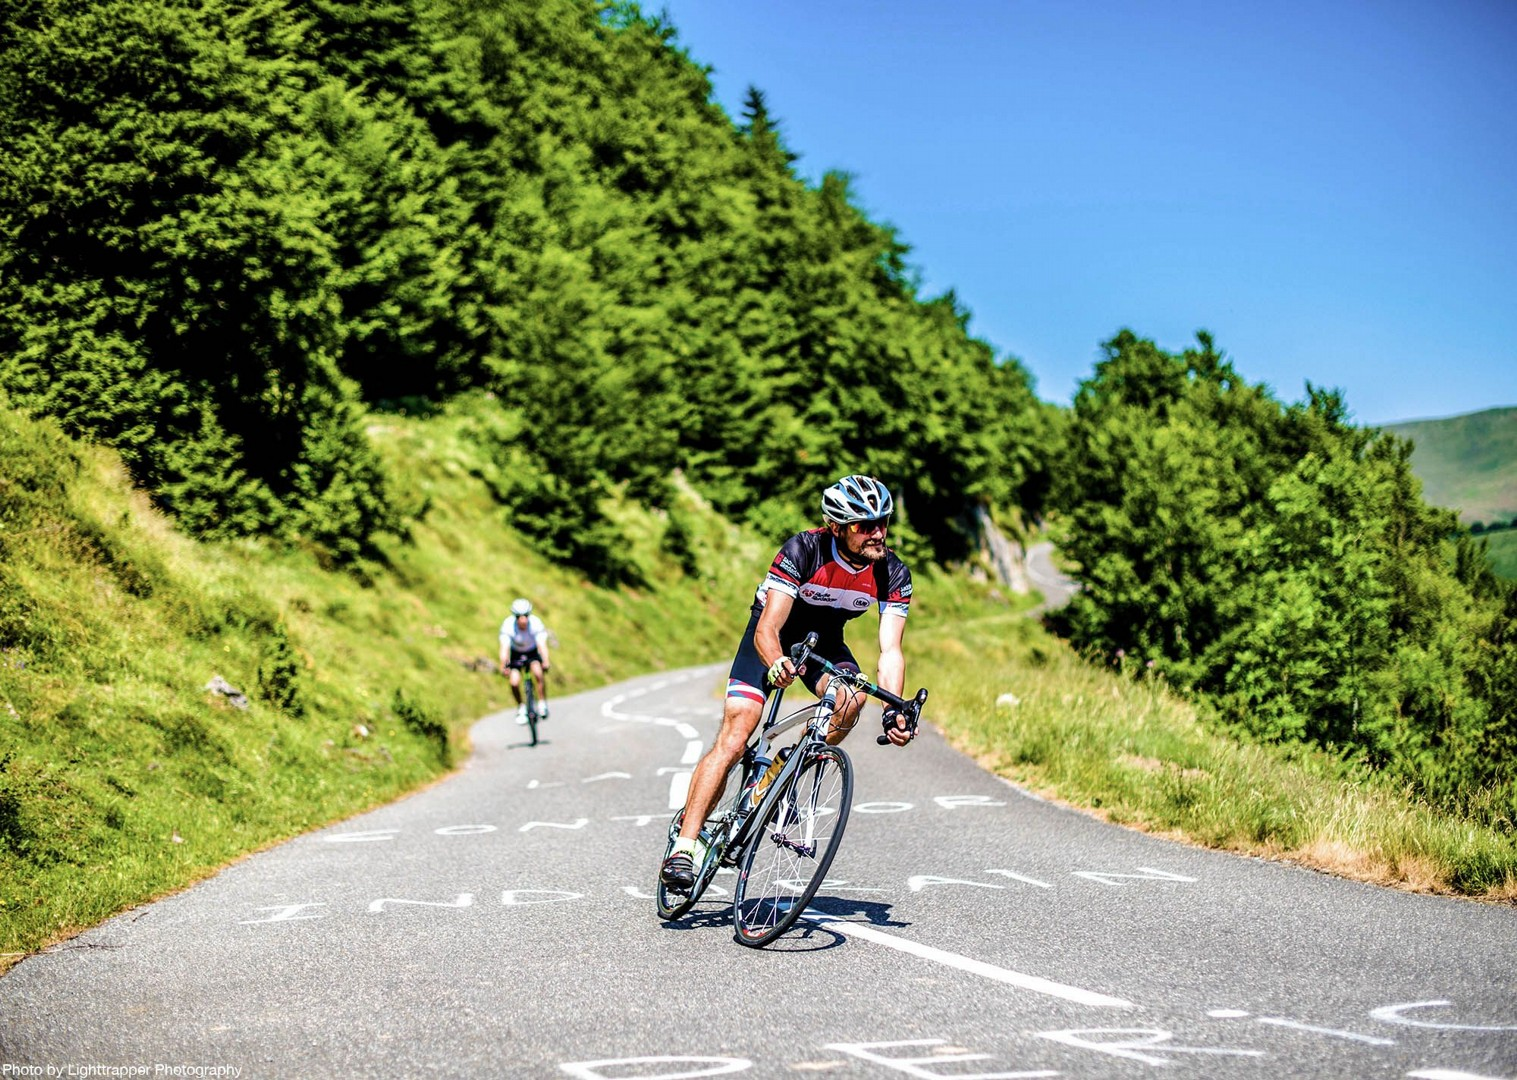 saddle-skedaddle-road-cycling-holiday-french-pyrenees.jpg - France - Pyrenees Fitness Week (Grade 2-3) - Guided Road Cycling Holiday - Road Cycling